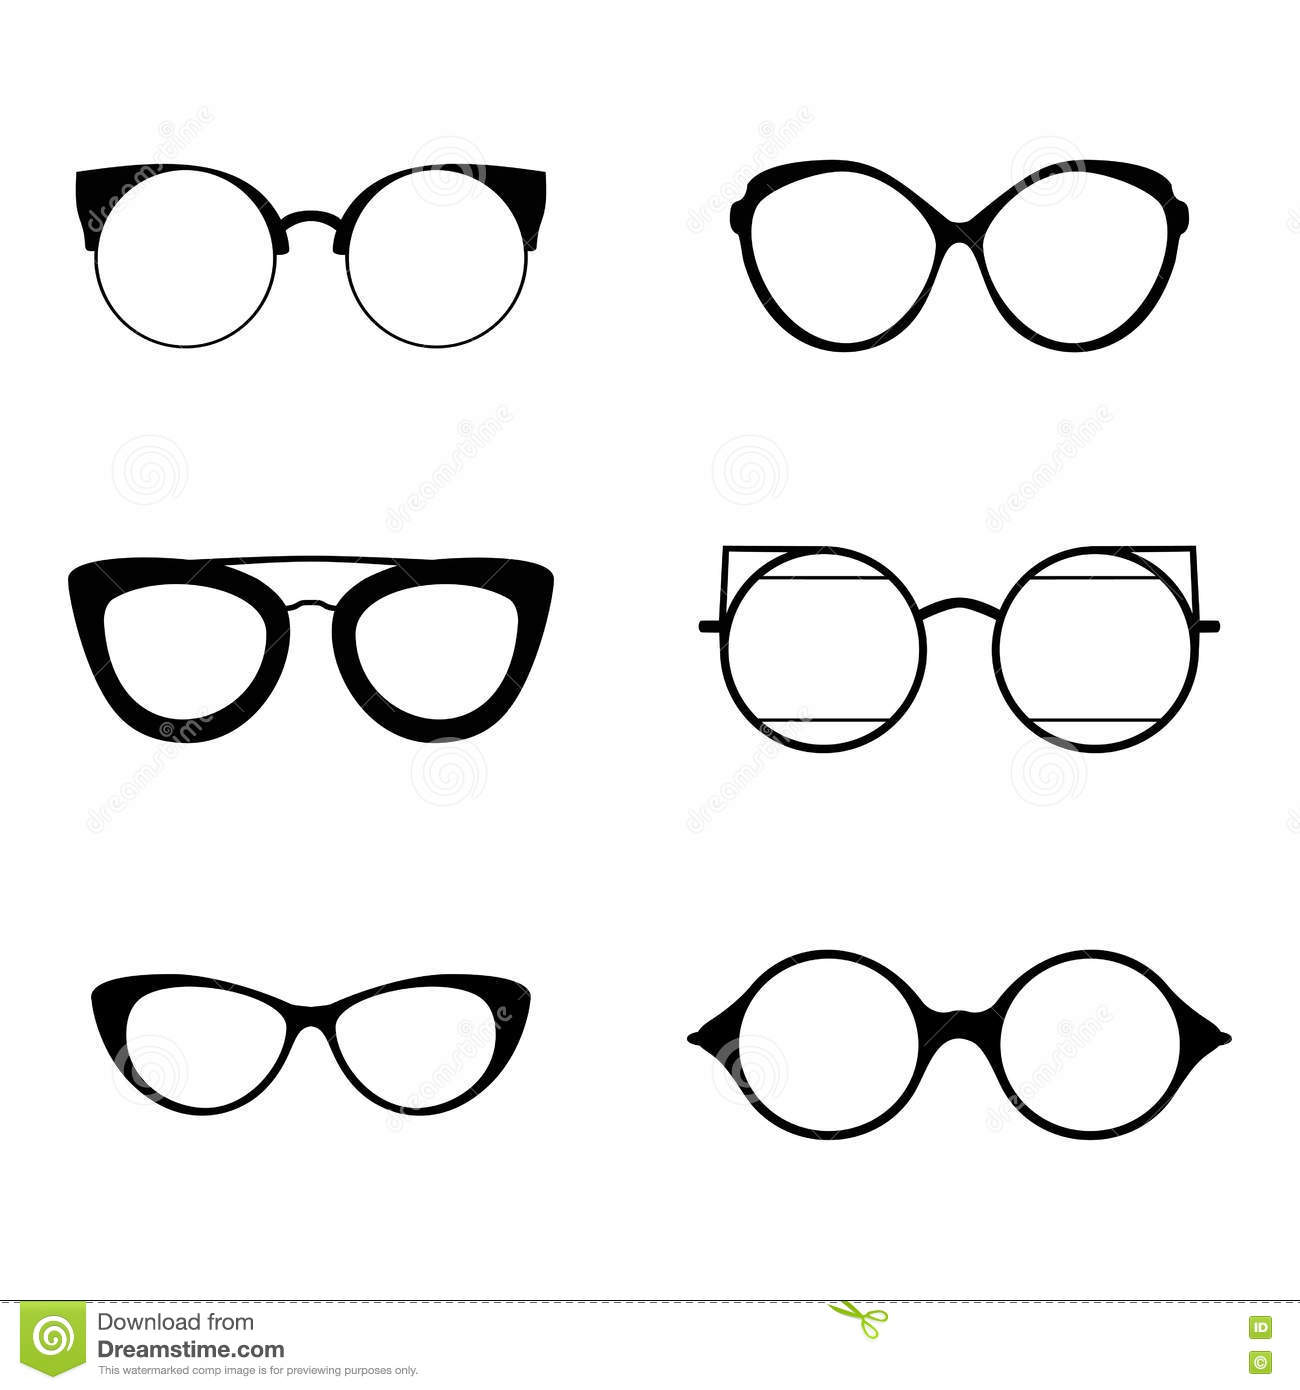 6ccbb571f09 Retro collection of 6 various glasses. Sunglasses black silhouettes. Eye  glasses set. Vector